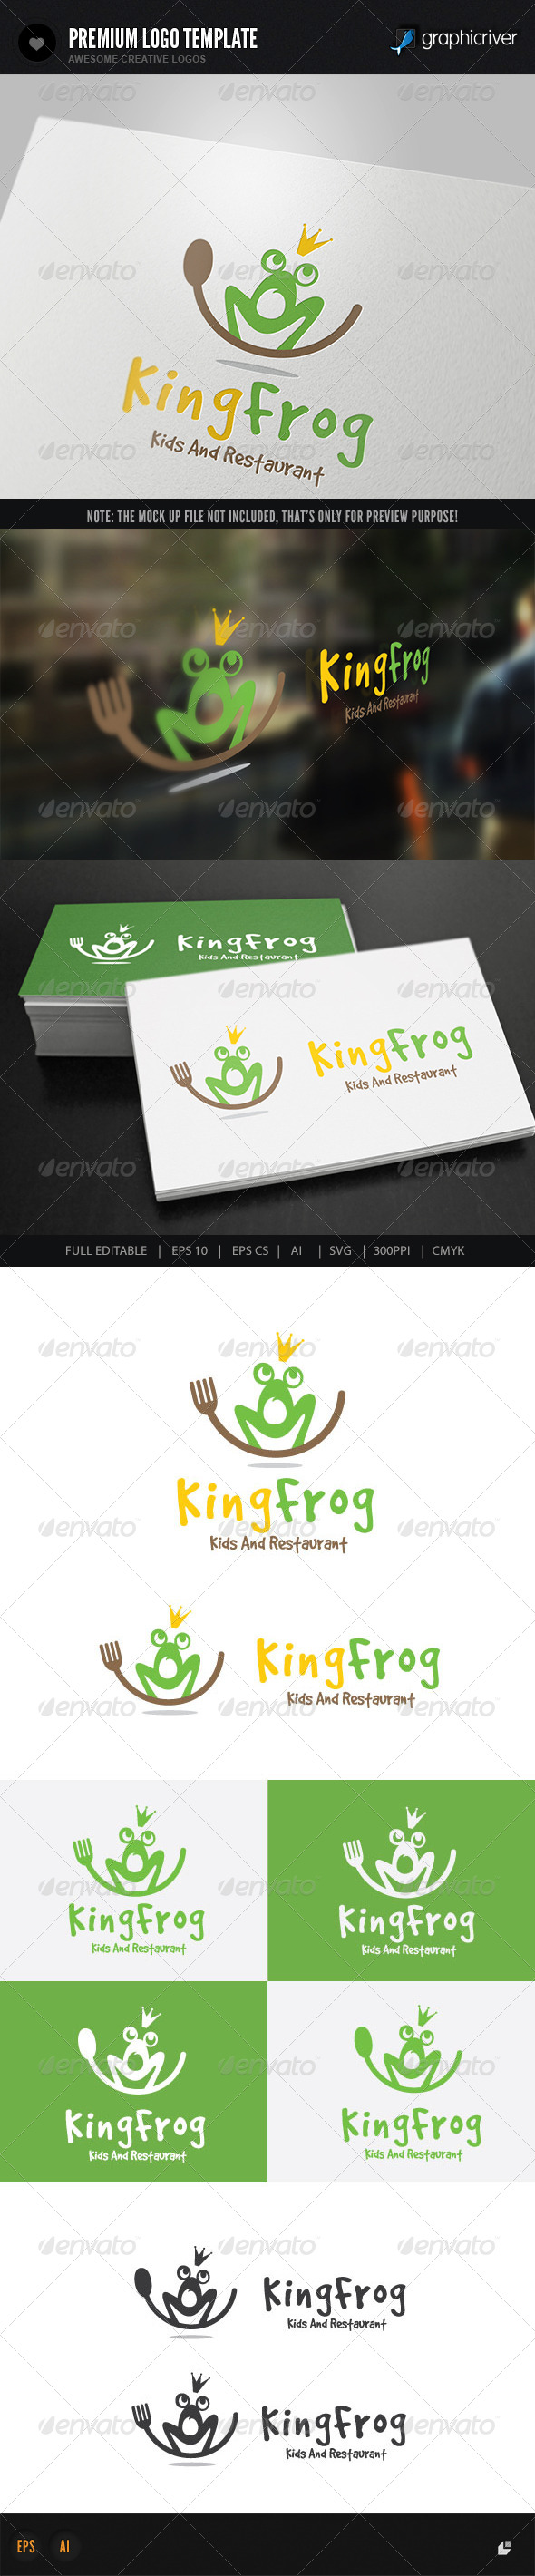 GraphicRiver King Frog Restaurant 8398845